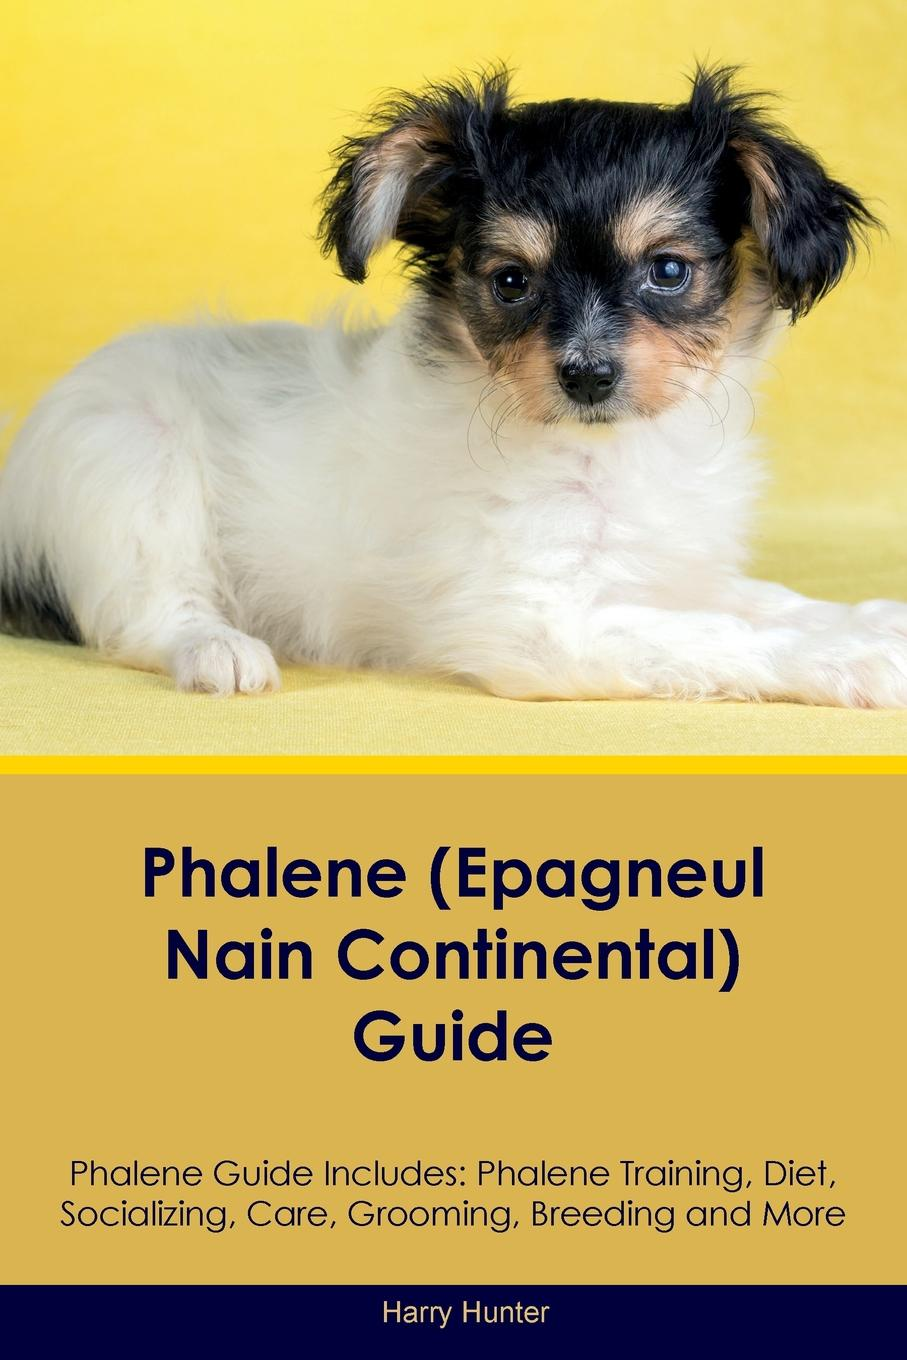 Phalene (Epagneul Nain Continental) Guide Phalene Guide Includes. Phalene Training, Diet, Socializing, Care, Grooming, Breeding and More